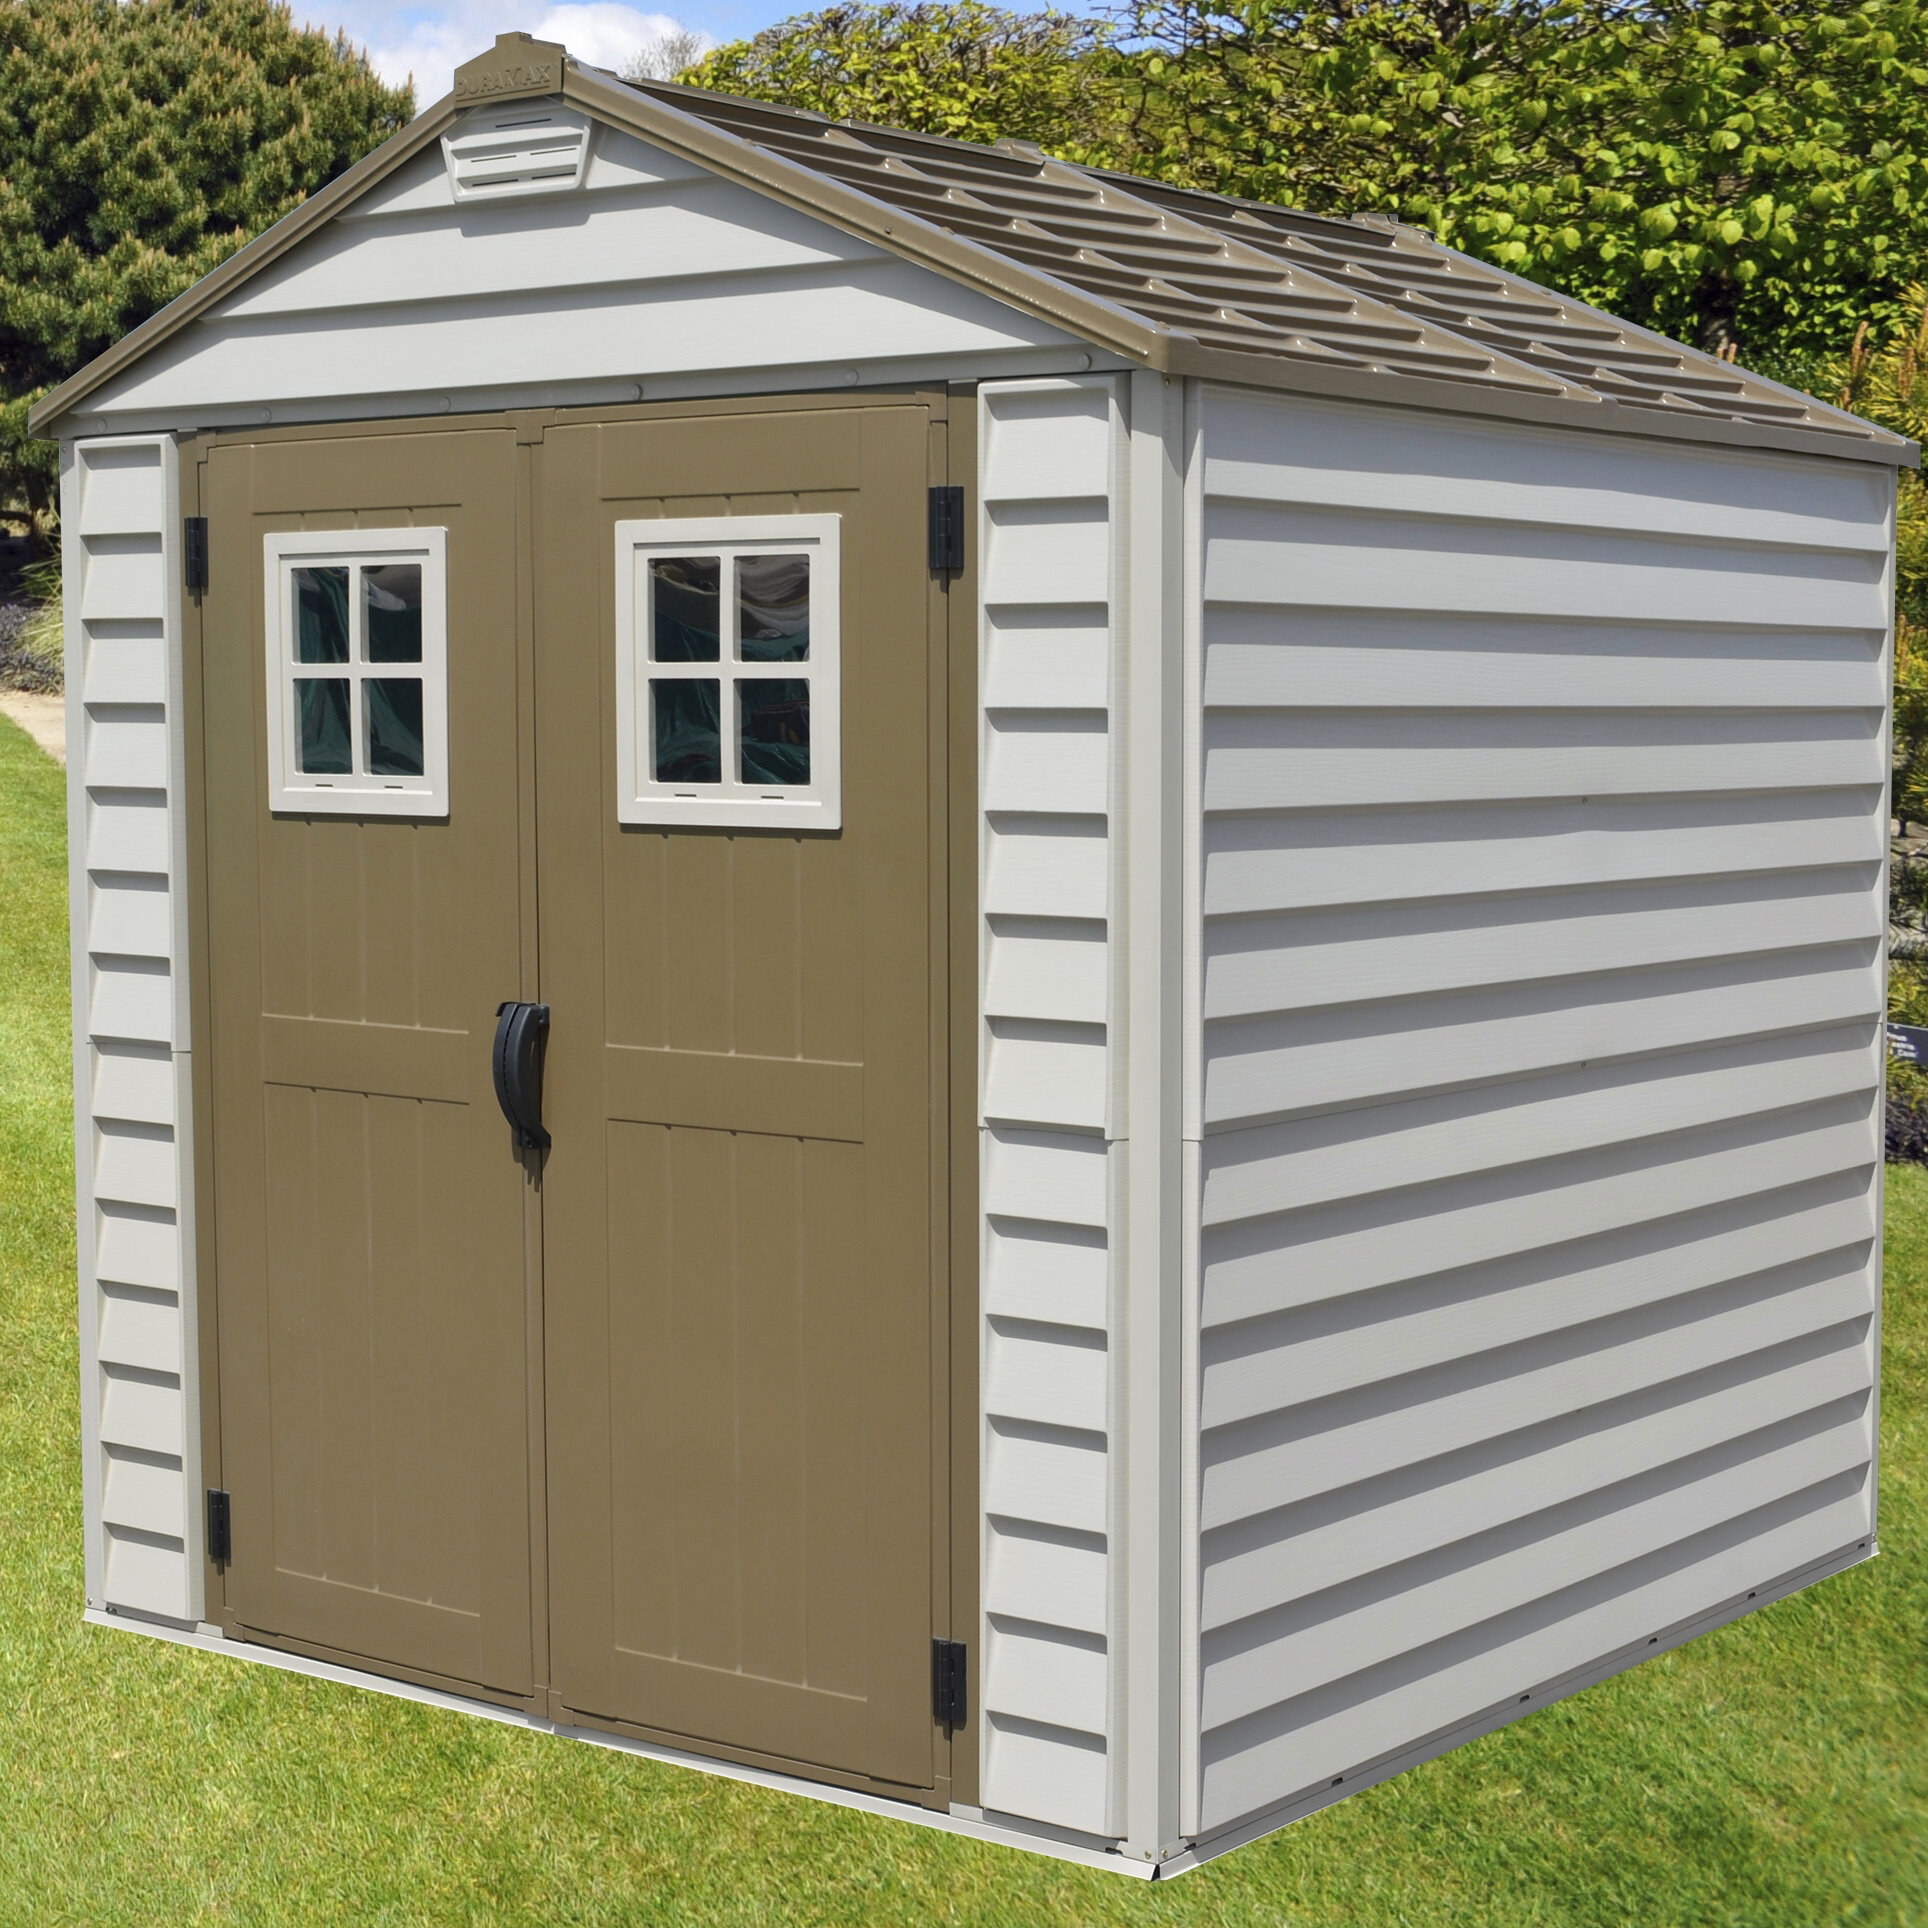 Duramax StoreMax 6 Ft. 9 In. W X 6 Ft. 10 In. D Plastic Storage Shed |  Wayfair